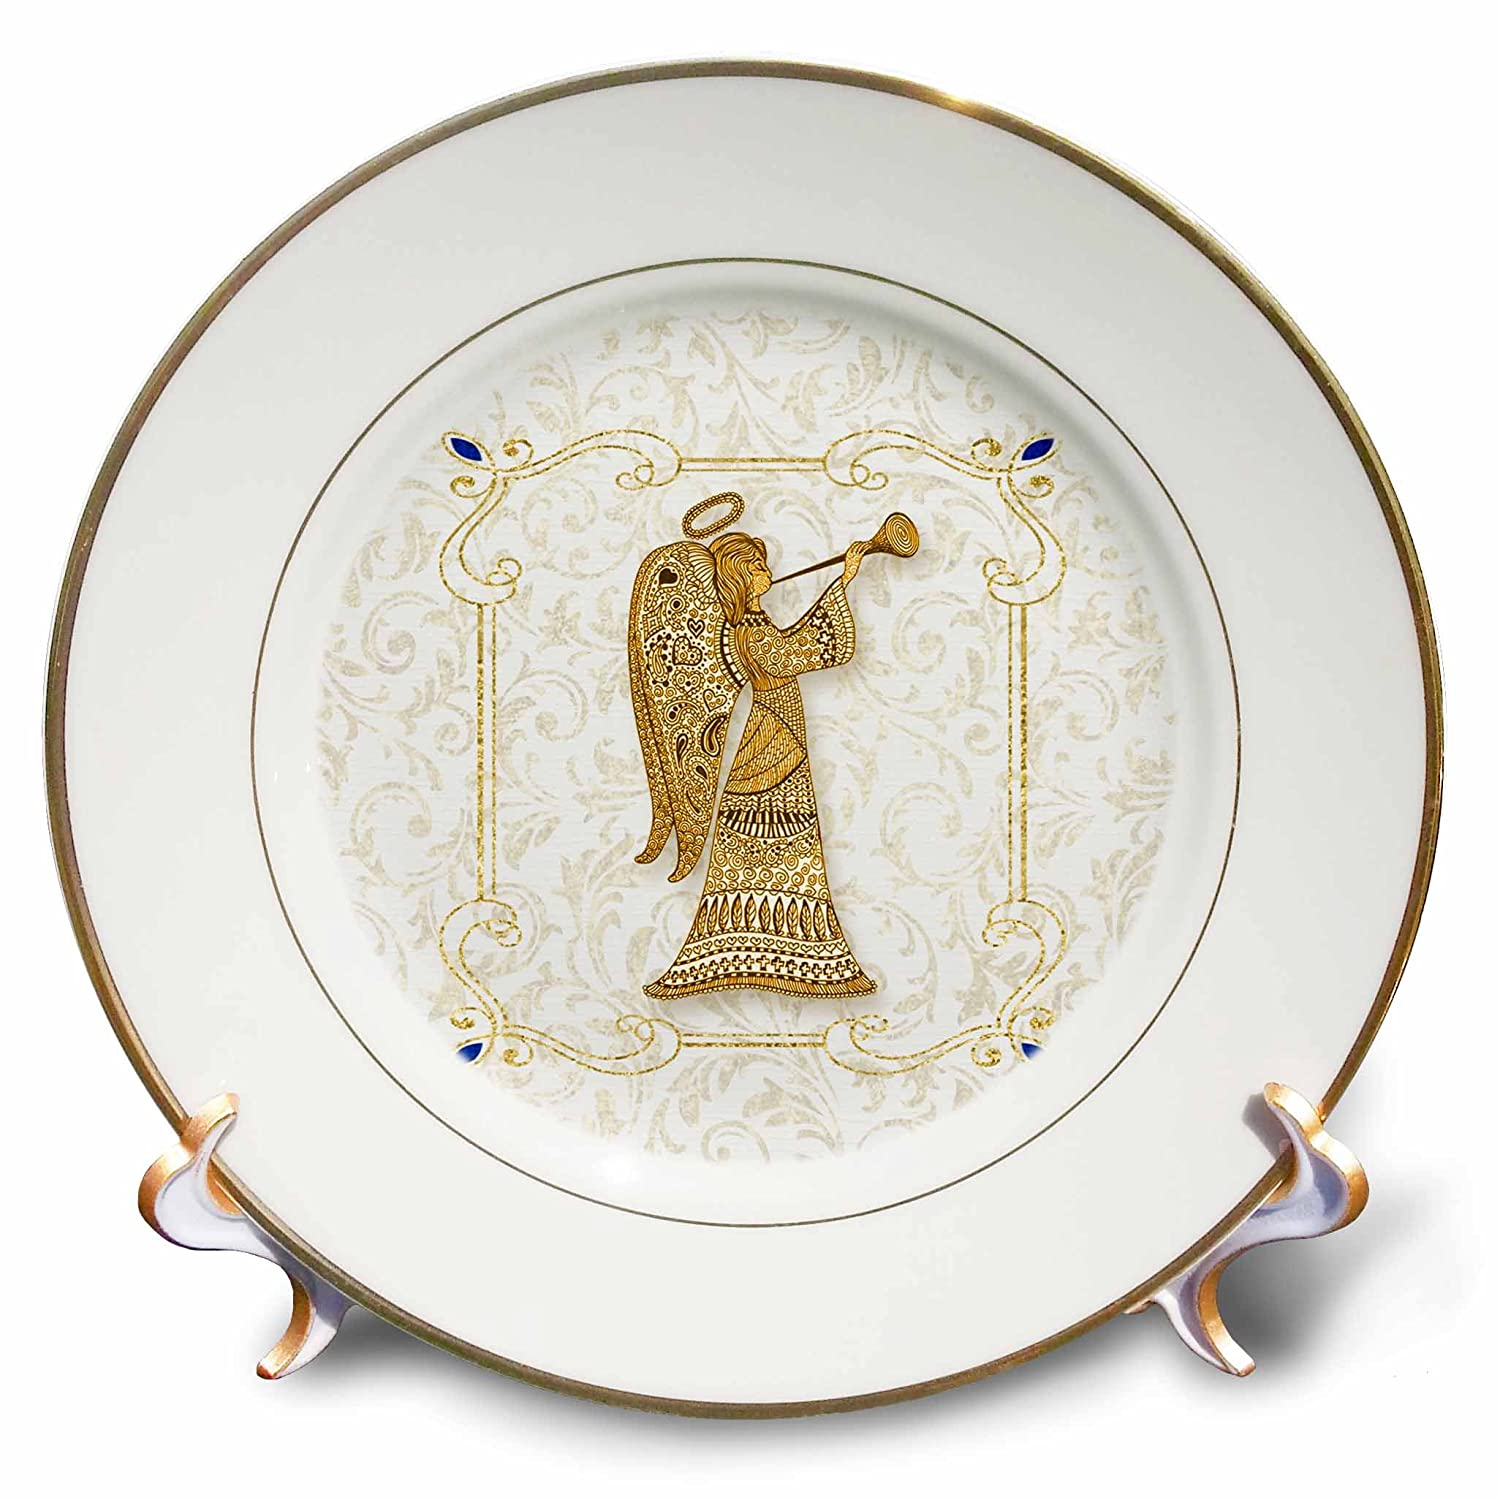 3dRose Doreen Erhardt Christmas Collection - Golden Christmas Angel with Blue Accents and Elegant Damask - 8 inch Porcelain Plate (cp_262626_1)